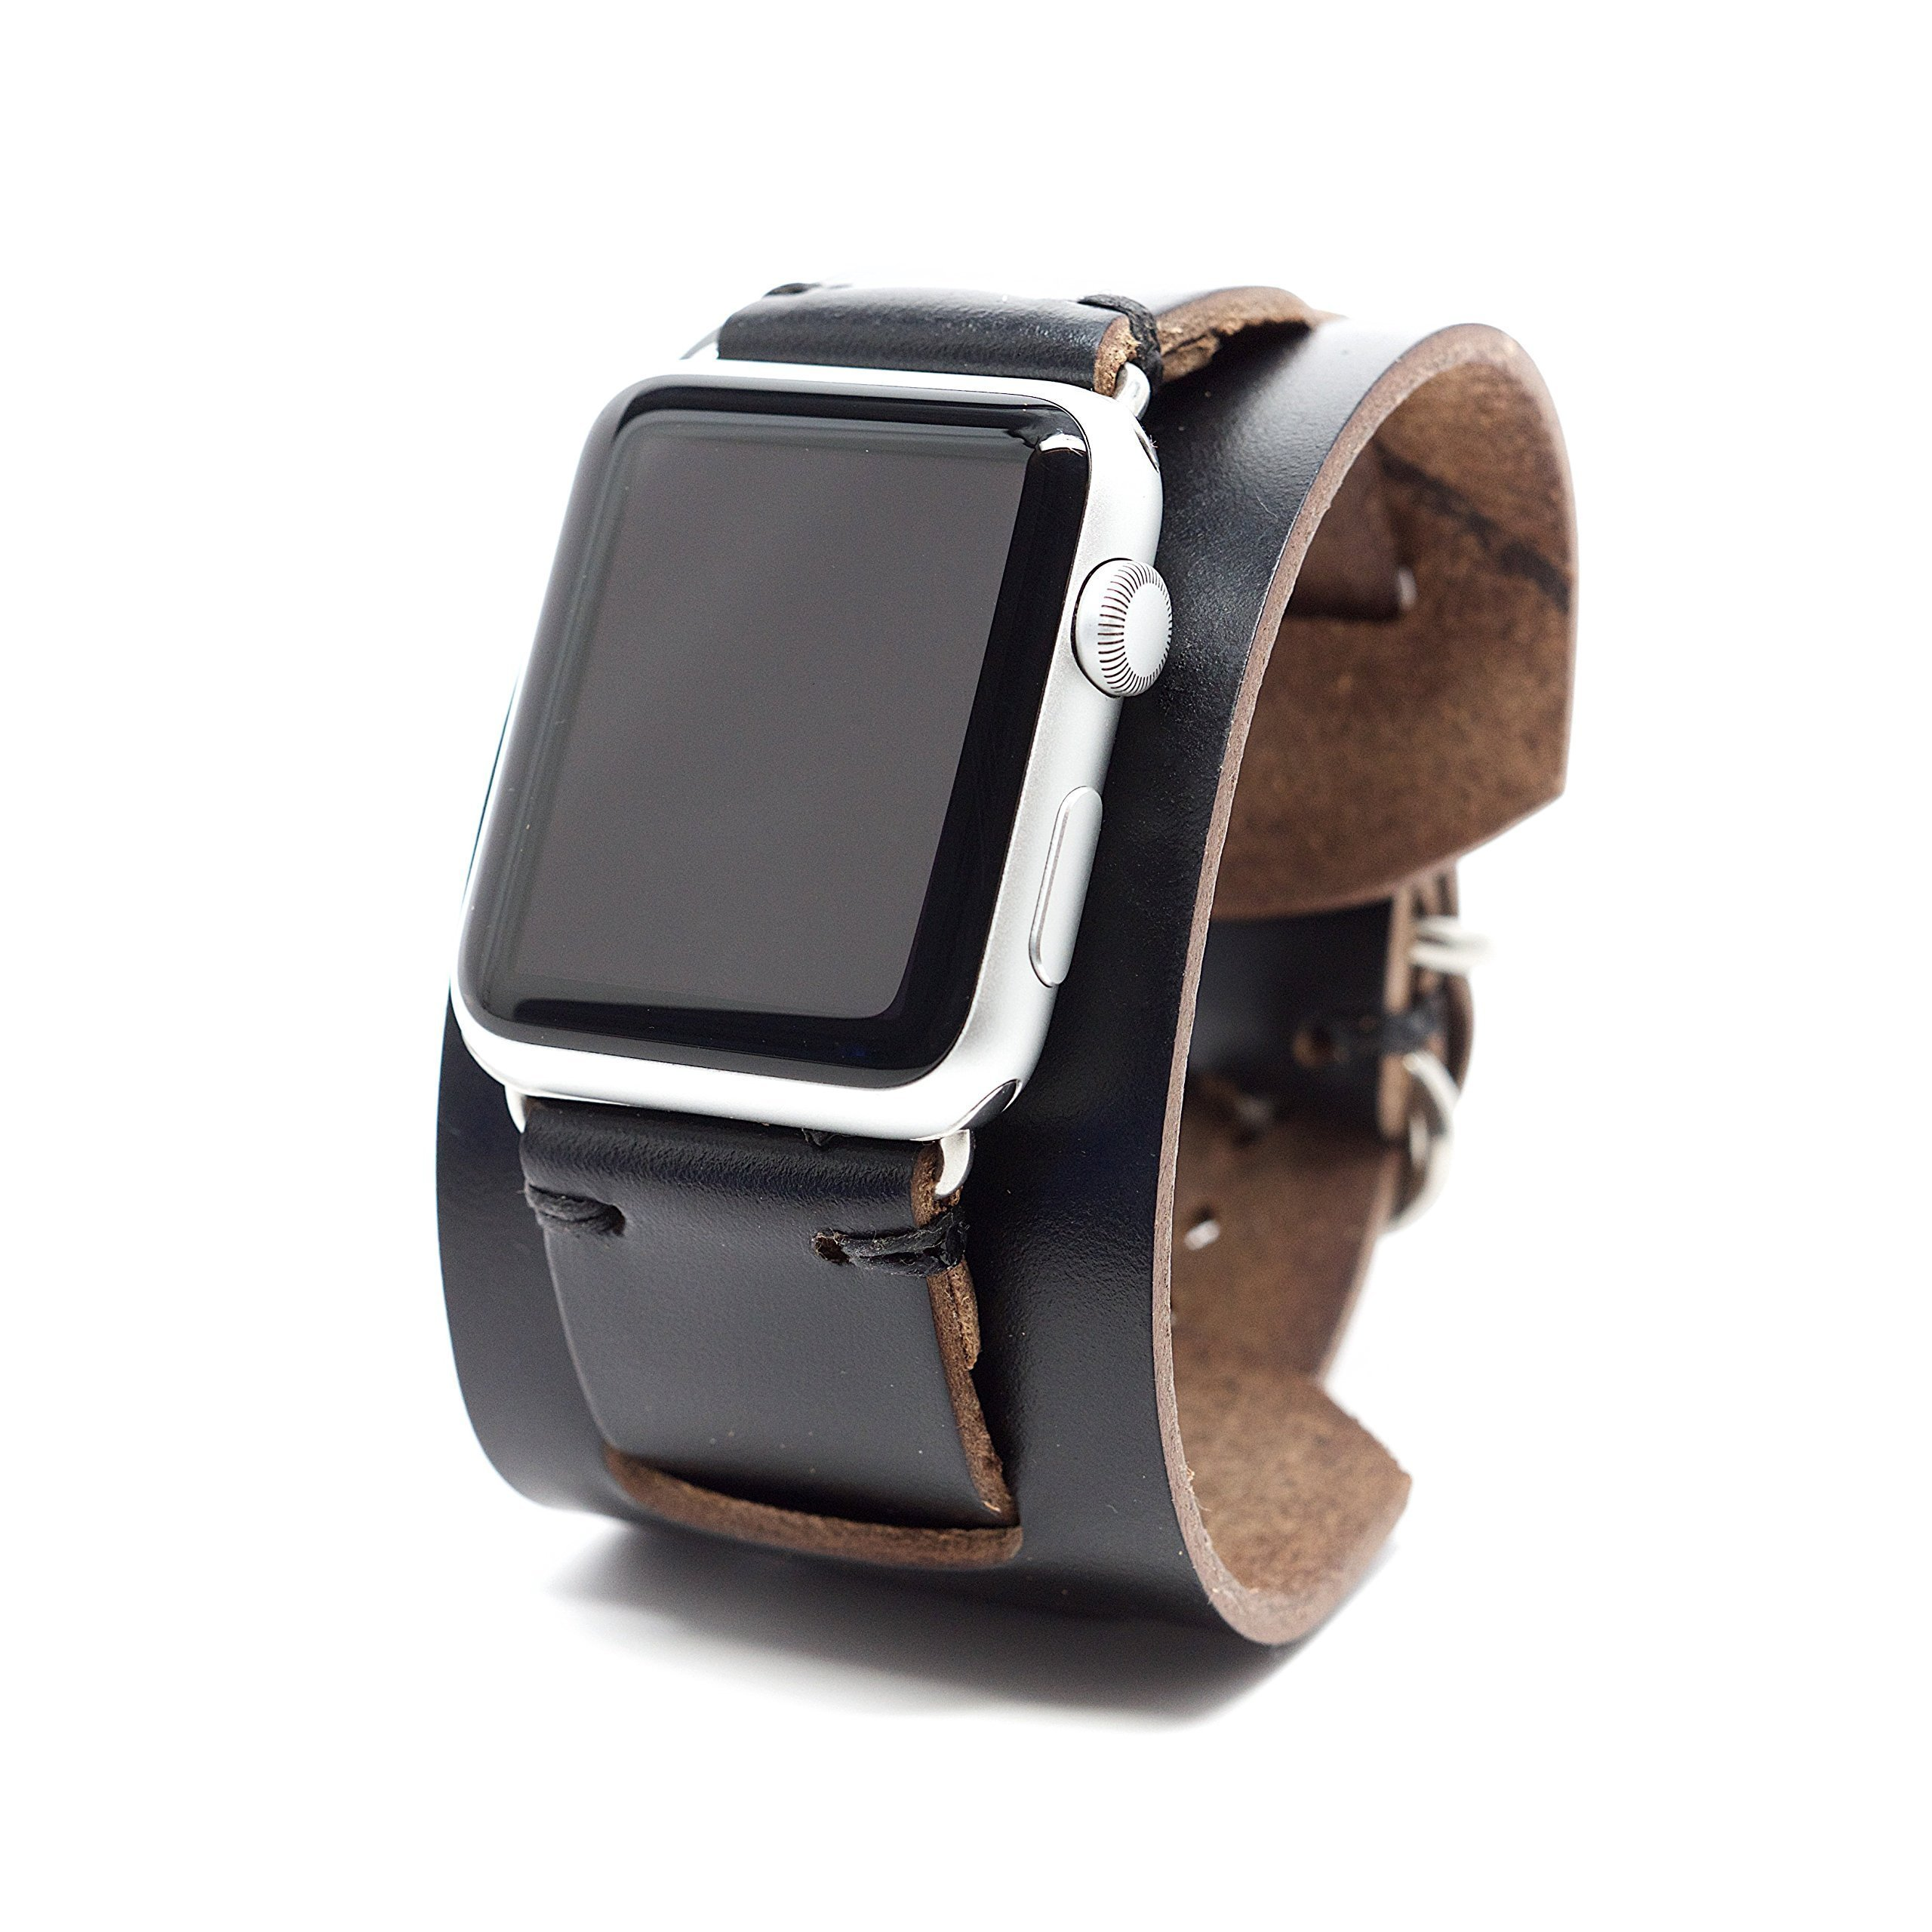 Apple Watch Band Leather Cuff Strap by E3 Supply Co. - Black Chromexcel